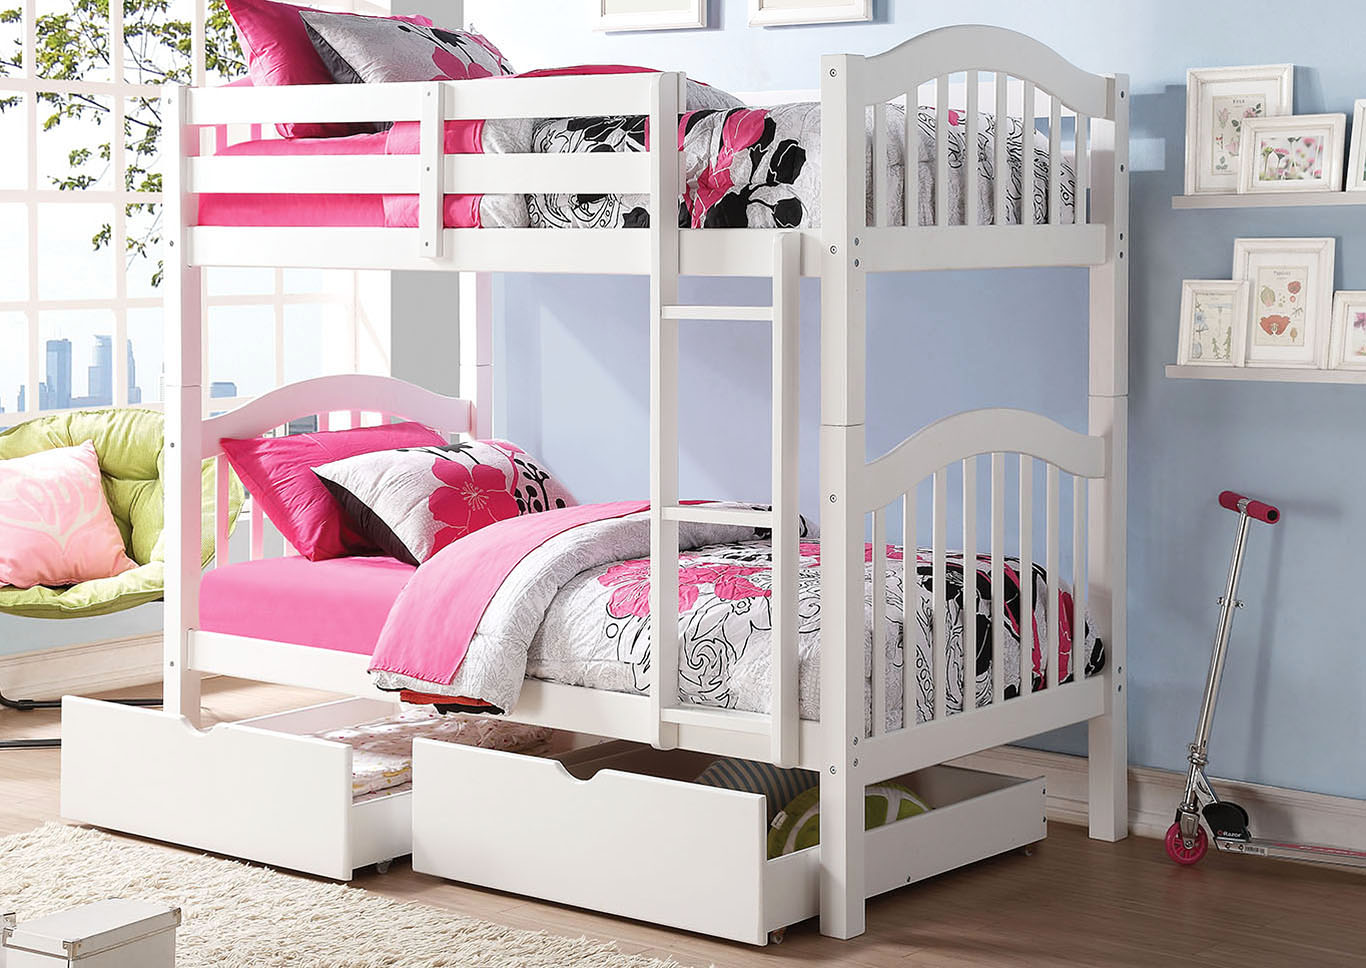 Heartland White Twin/Twin Bunk Bed w/Storage,Acme